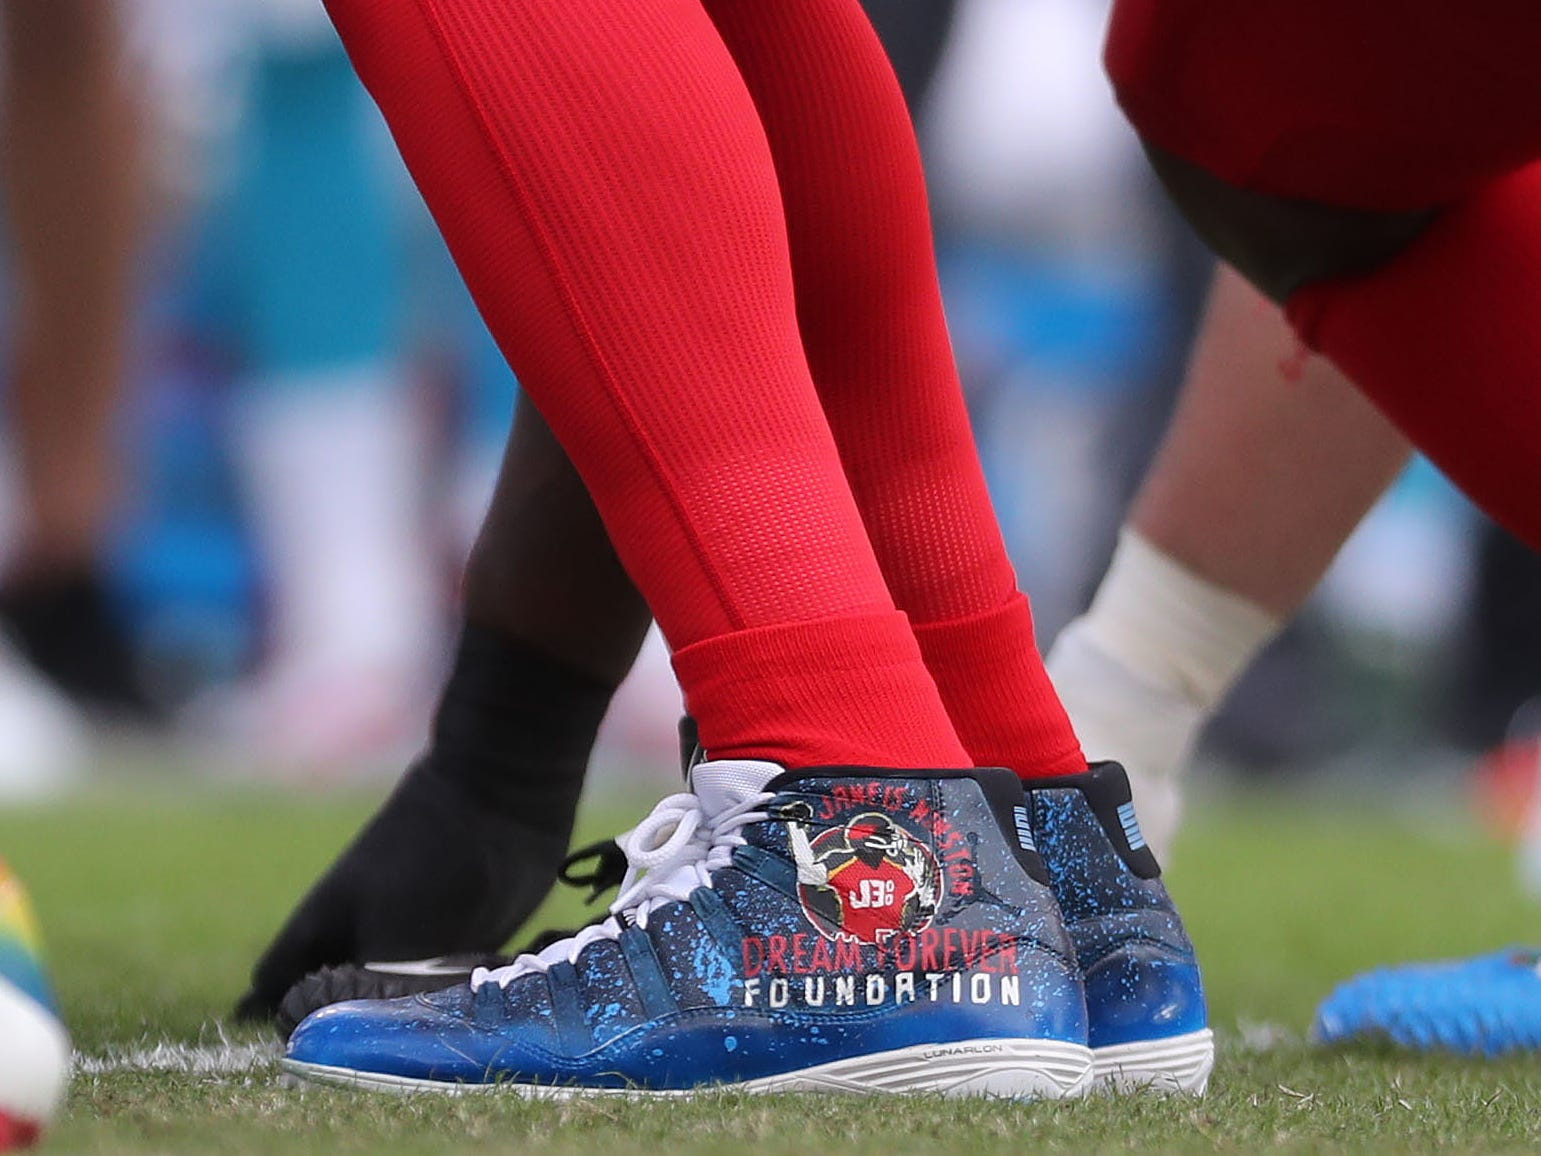 Tampa Bay Buccaneers quarterback Jameis Winston cleats at the line of scrimmage during the first quarter at Raymond James Stadium.